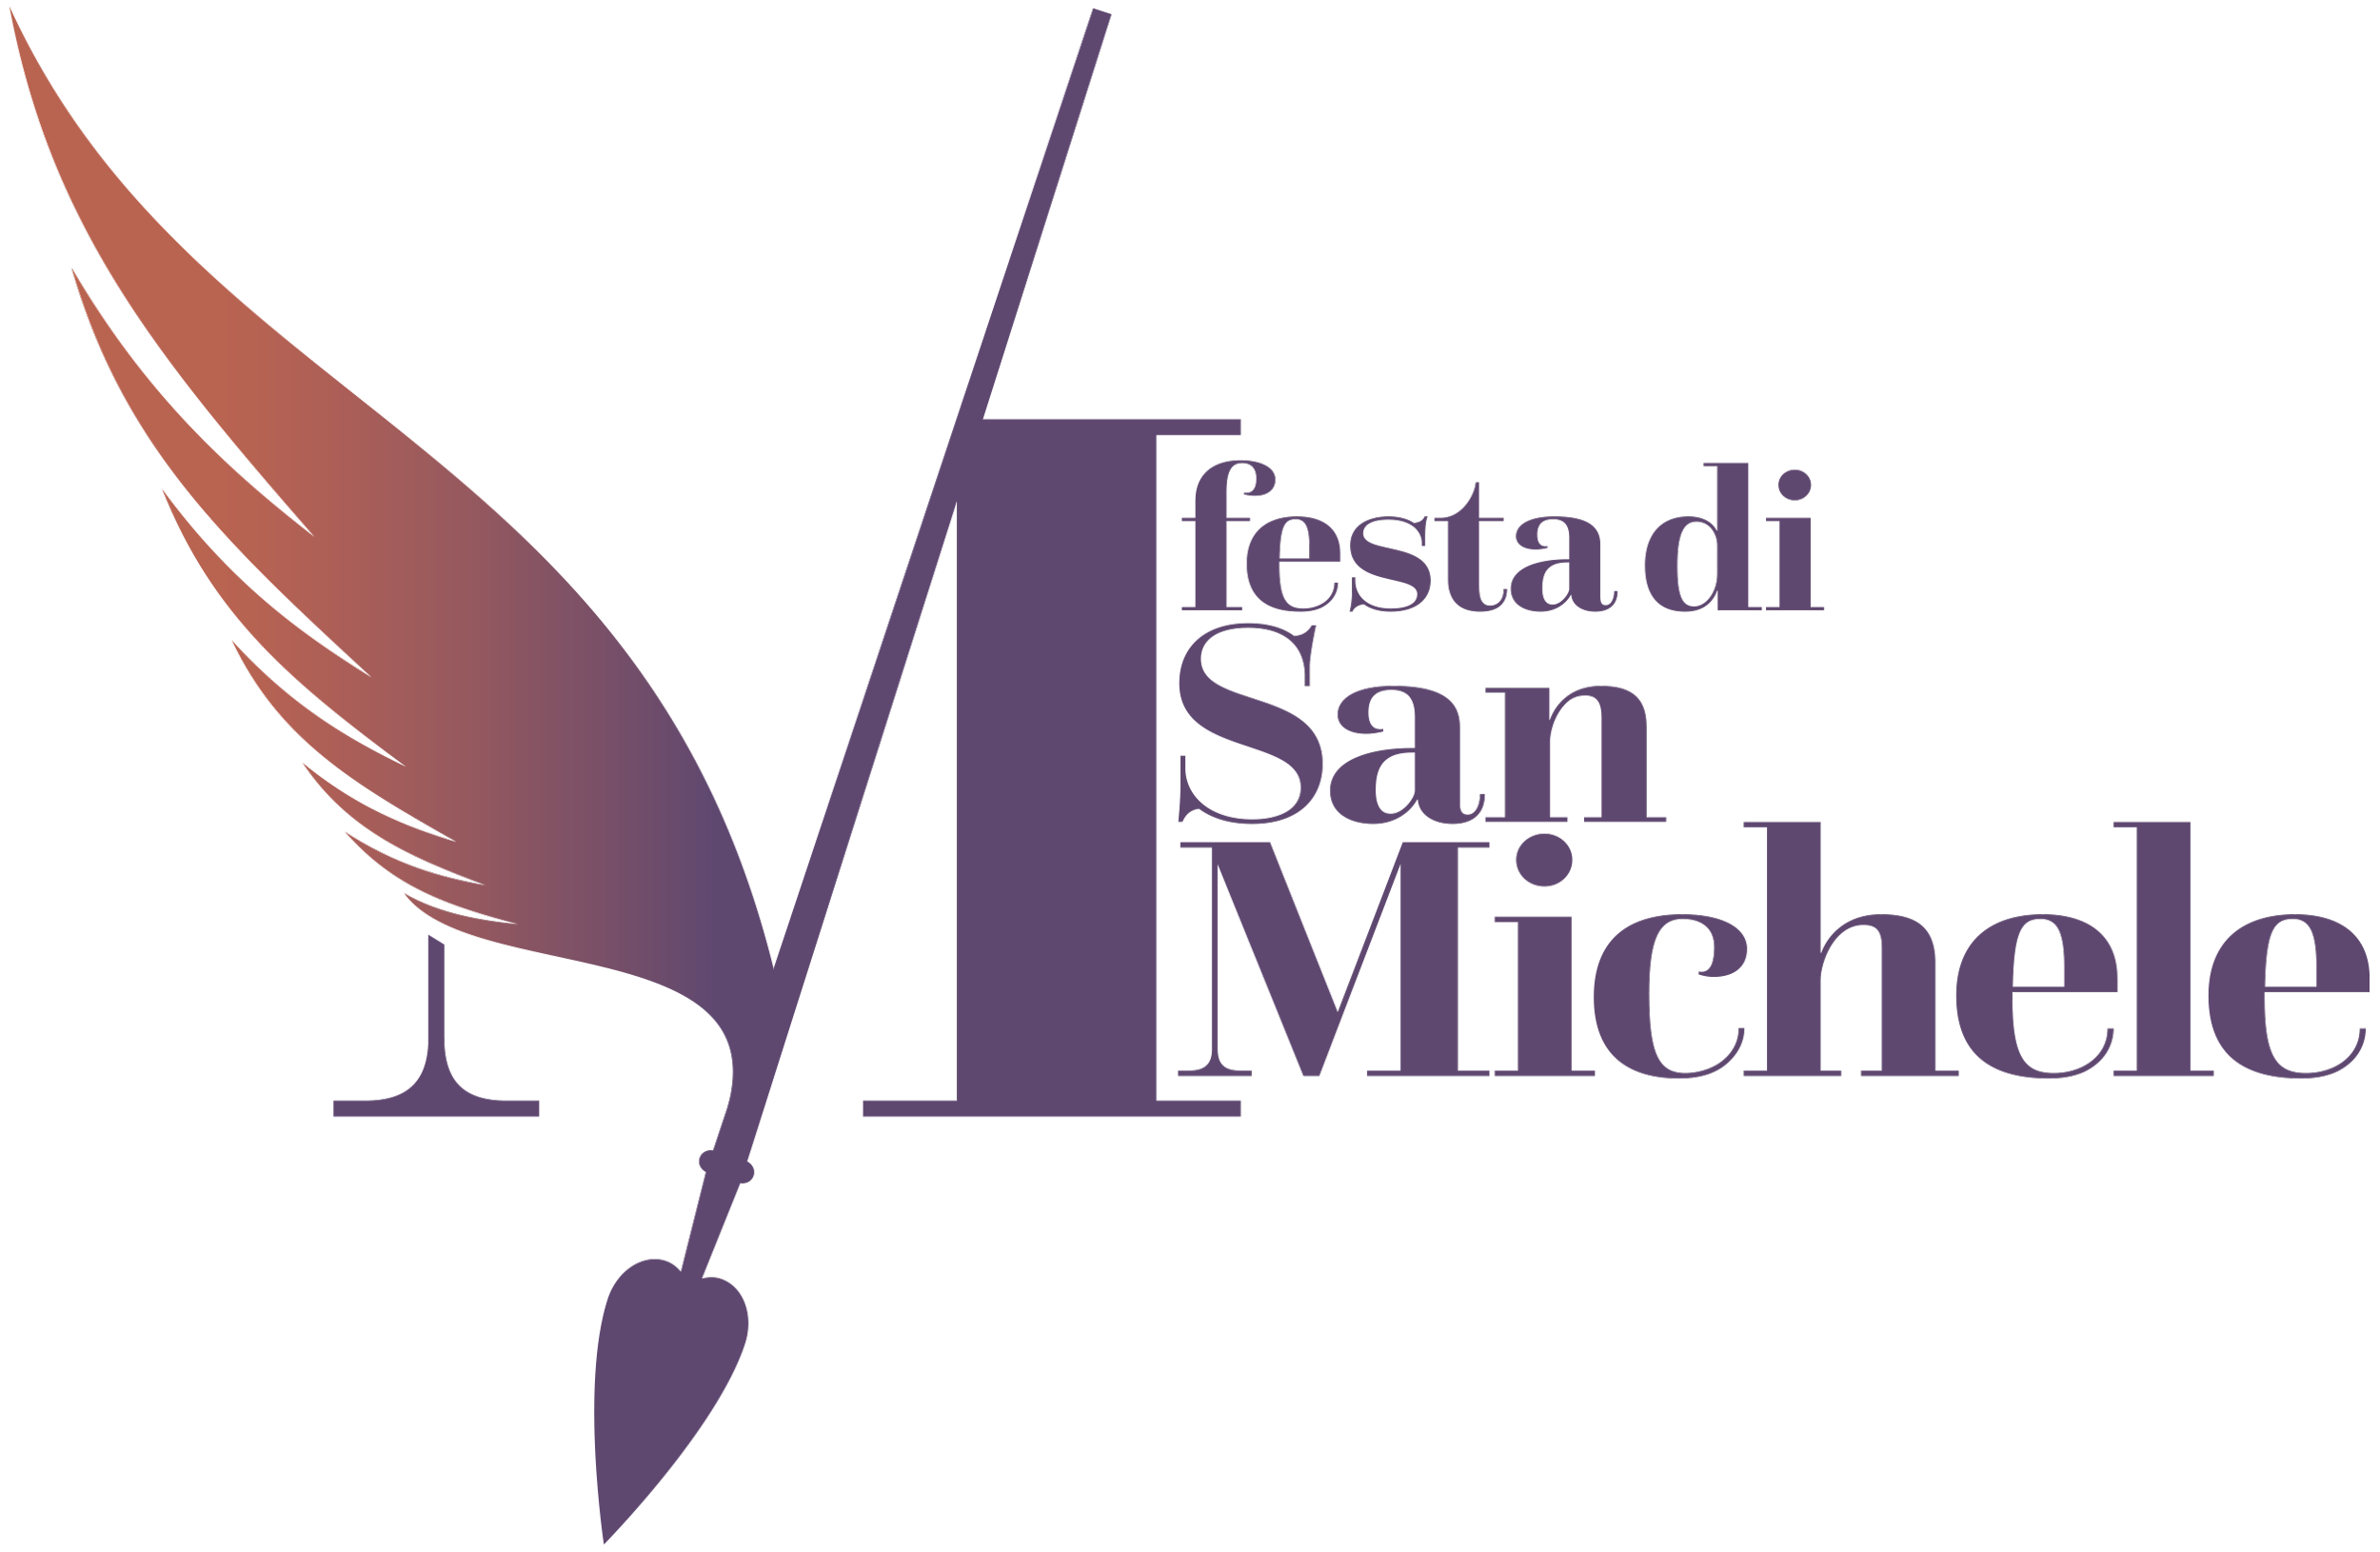 Festa di San Michele